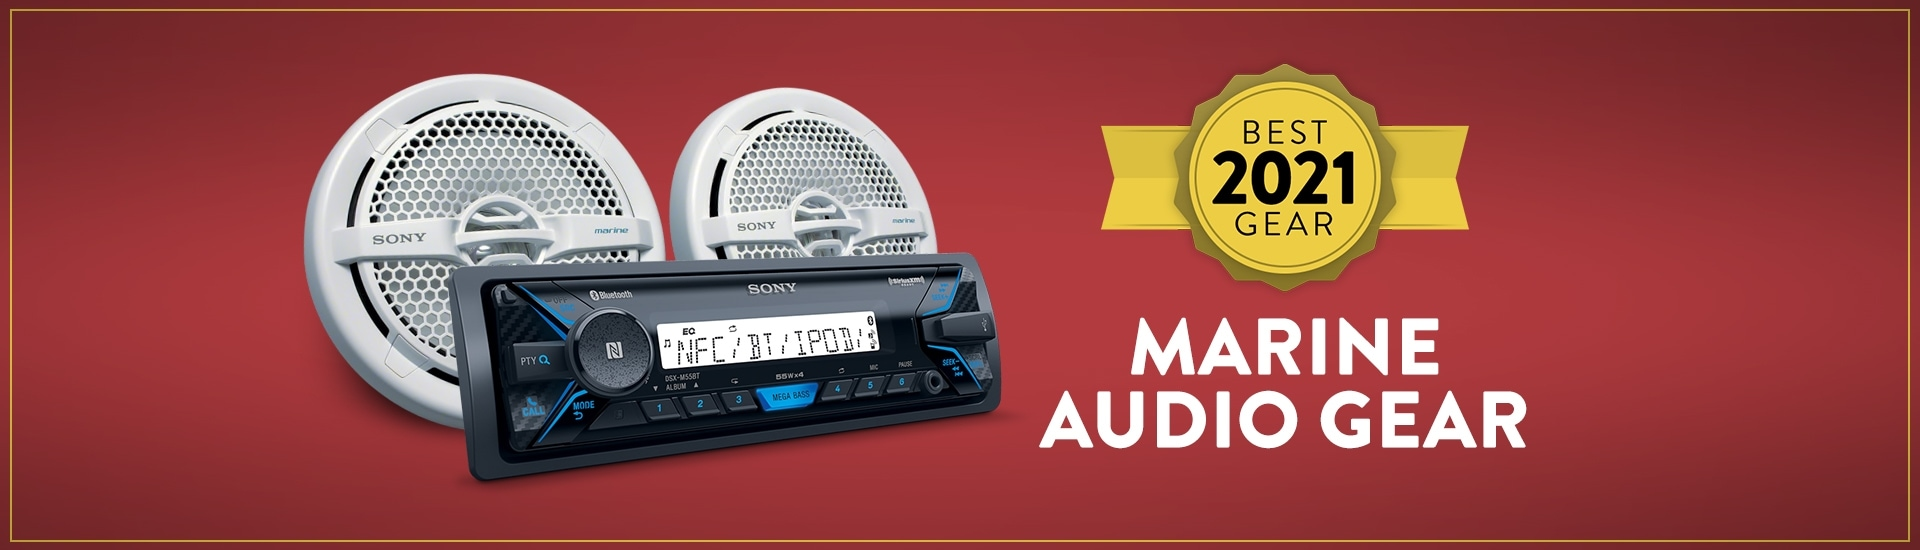 The Best Marine Audio Gear of 2021